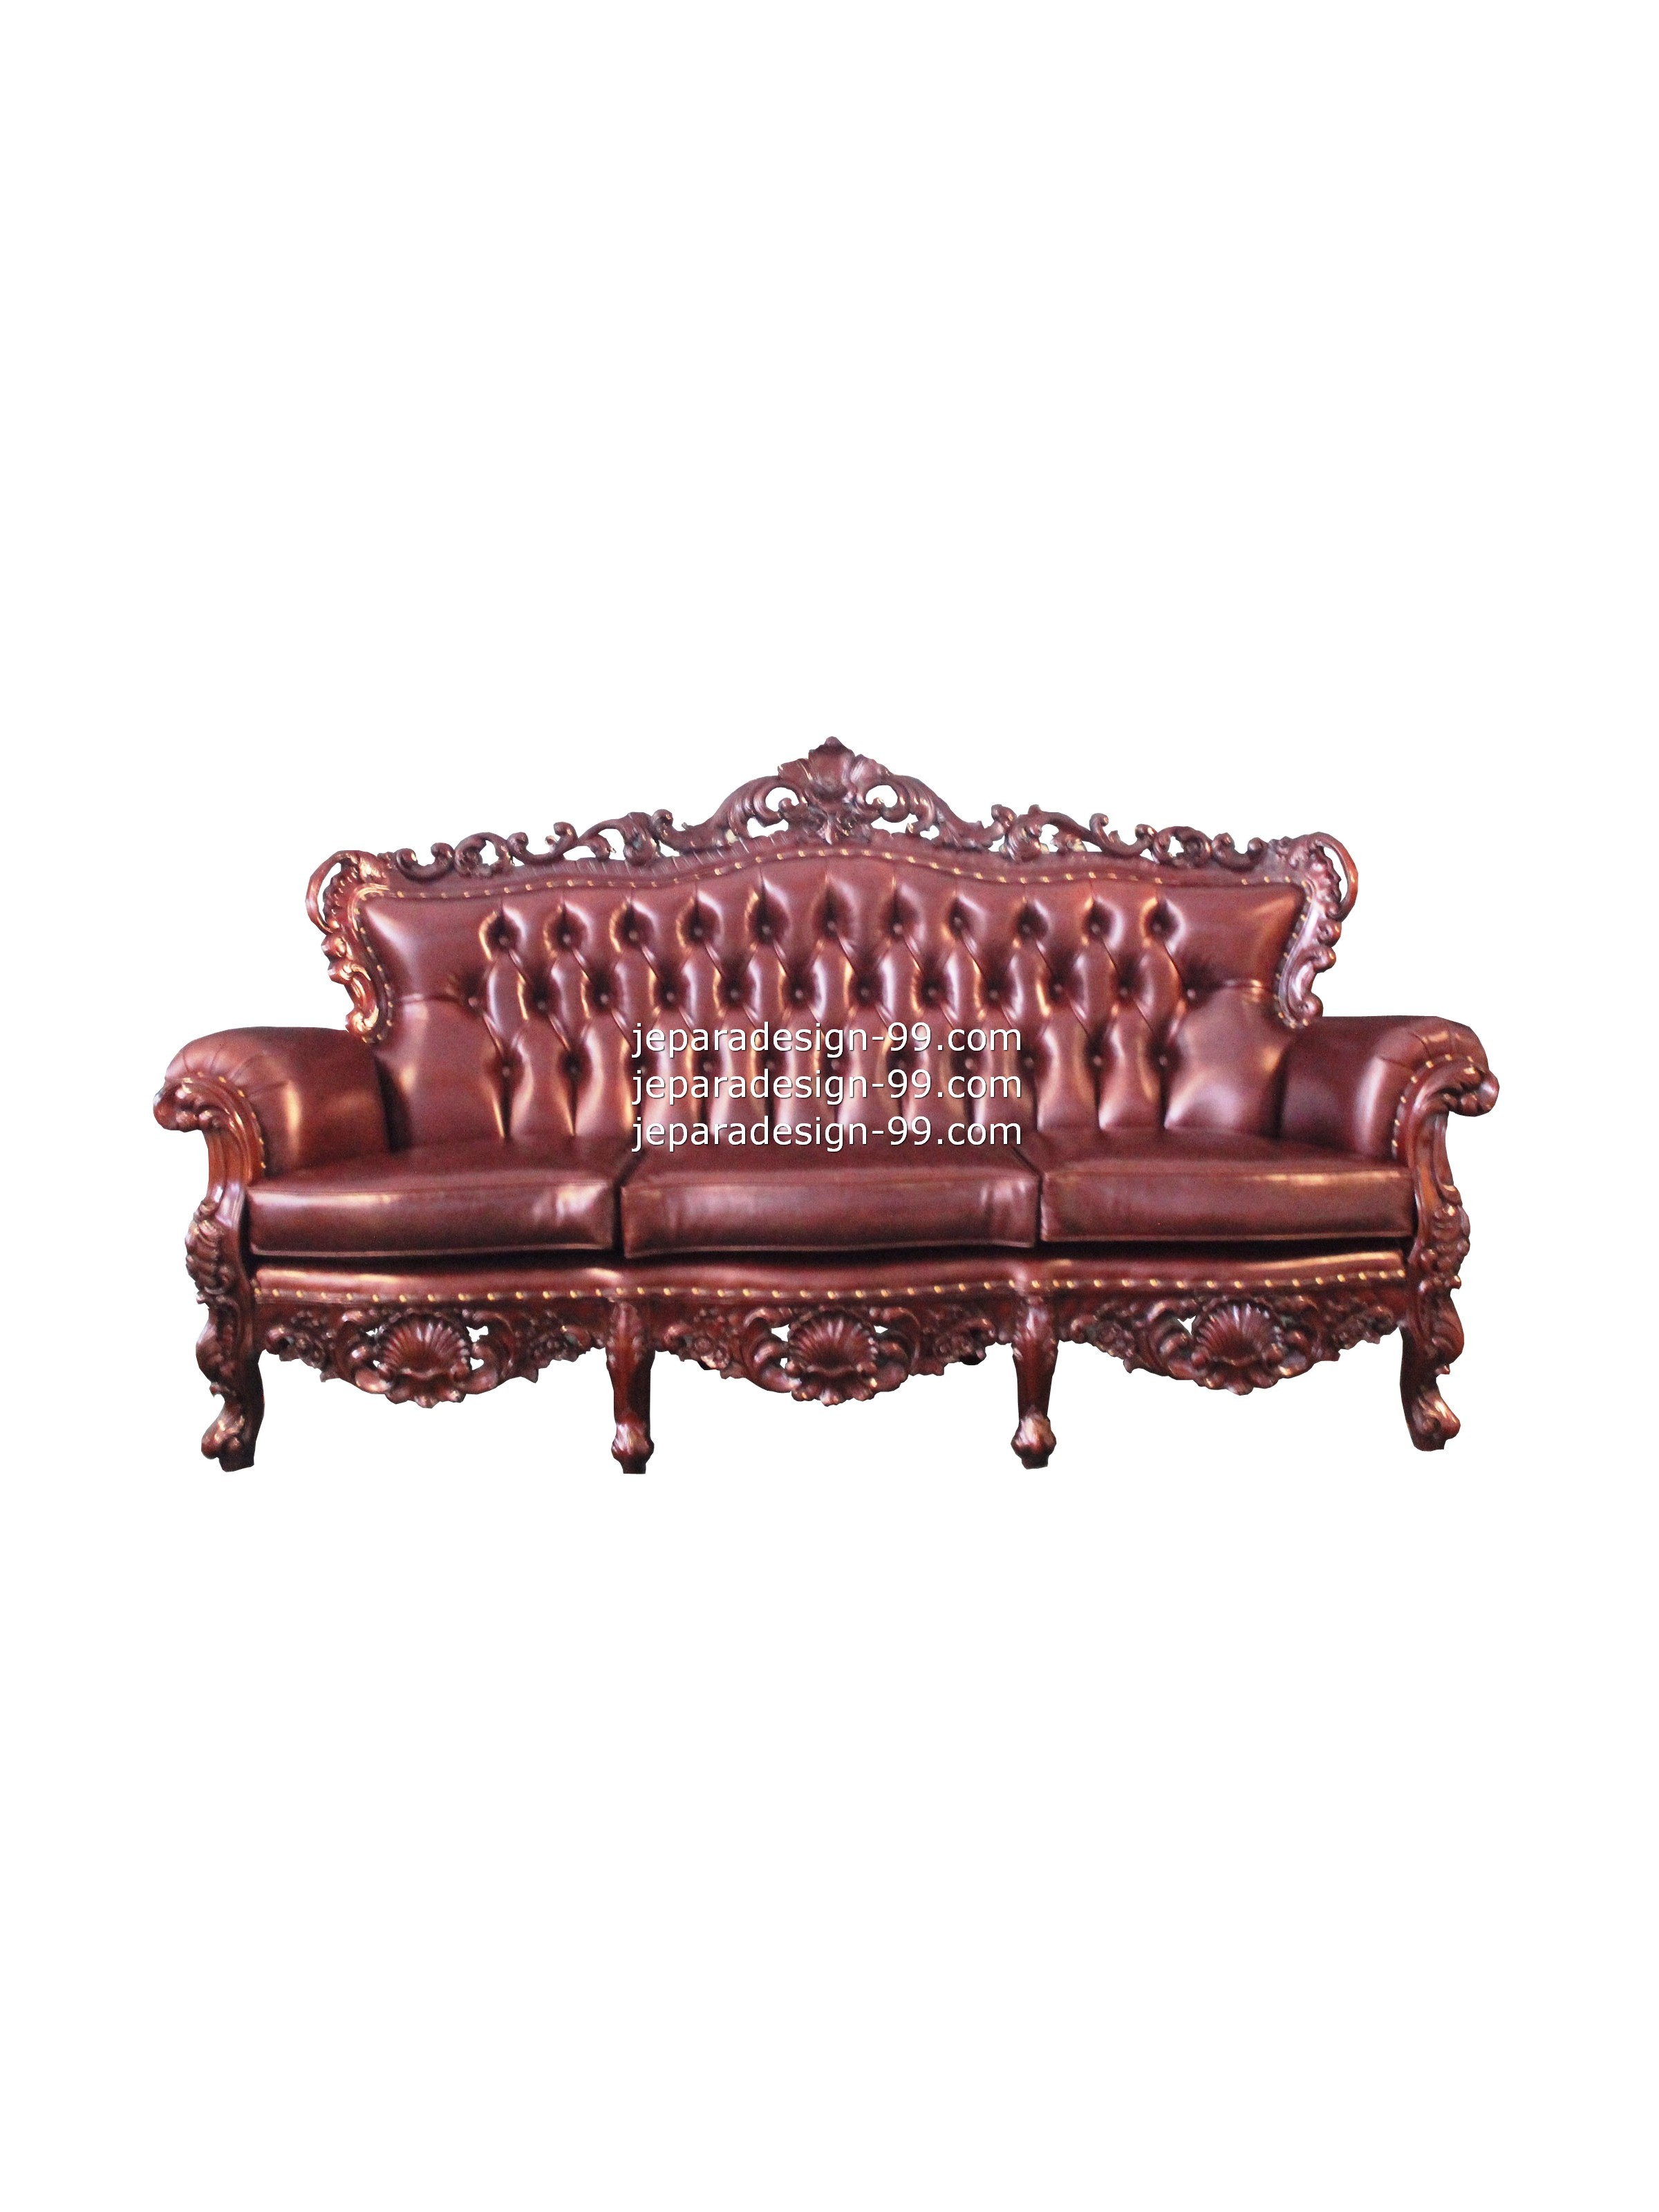 French Provincial Classic Sofa by Jepara Design 99